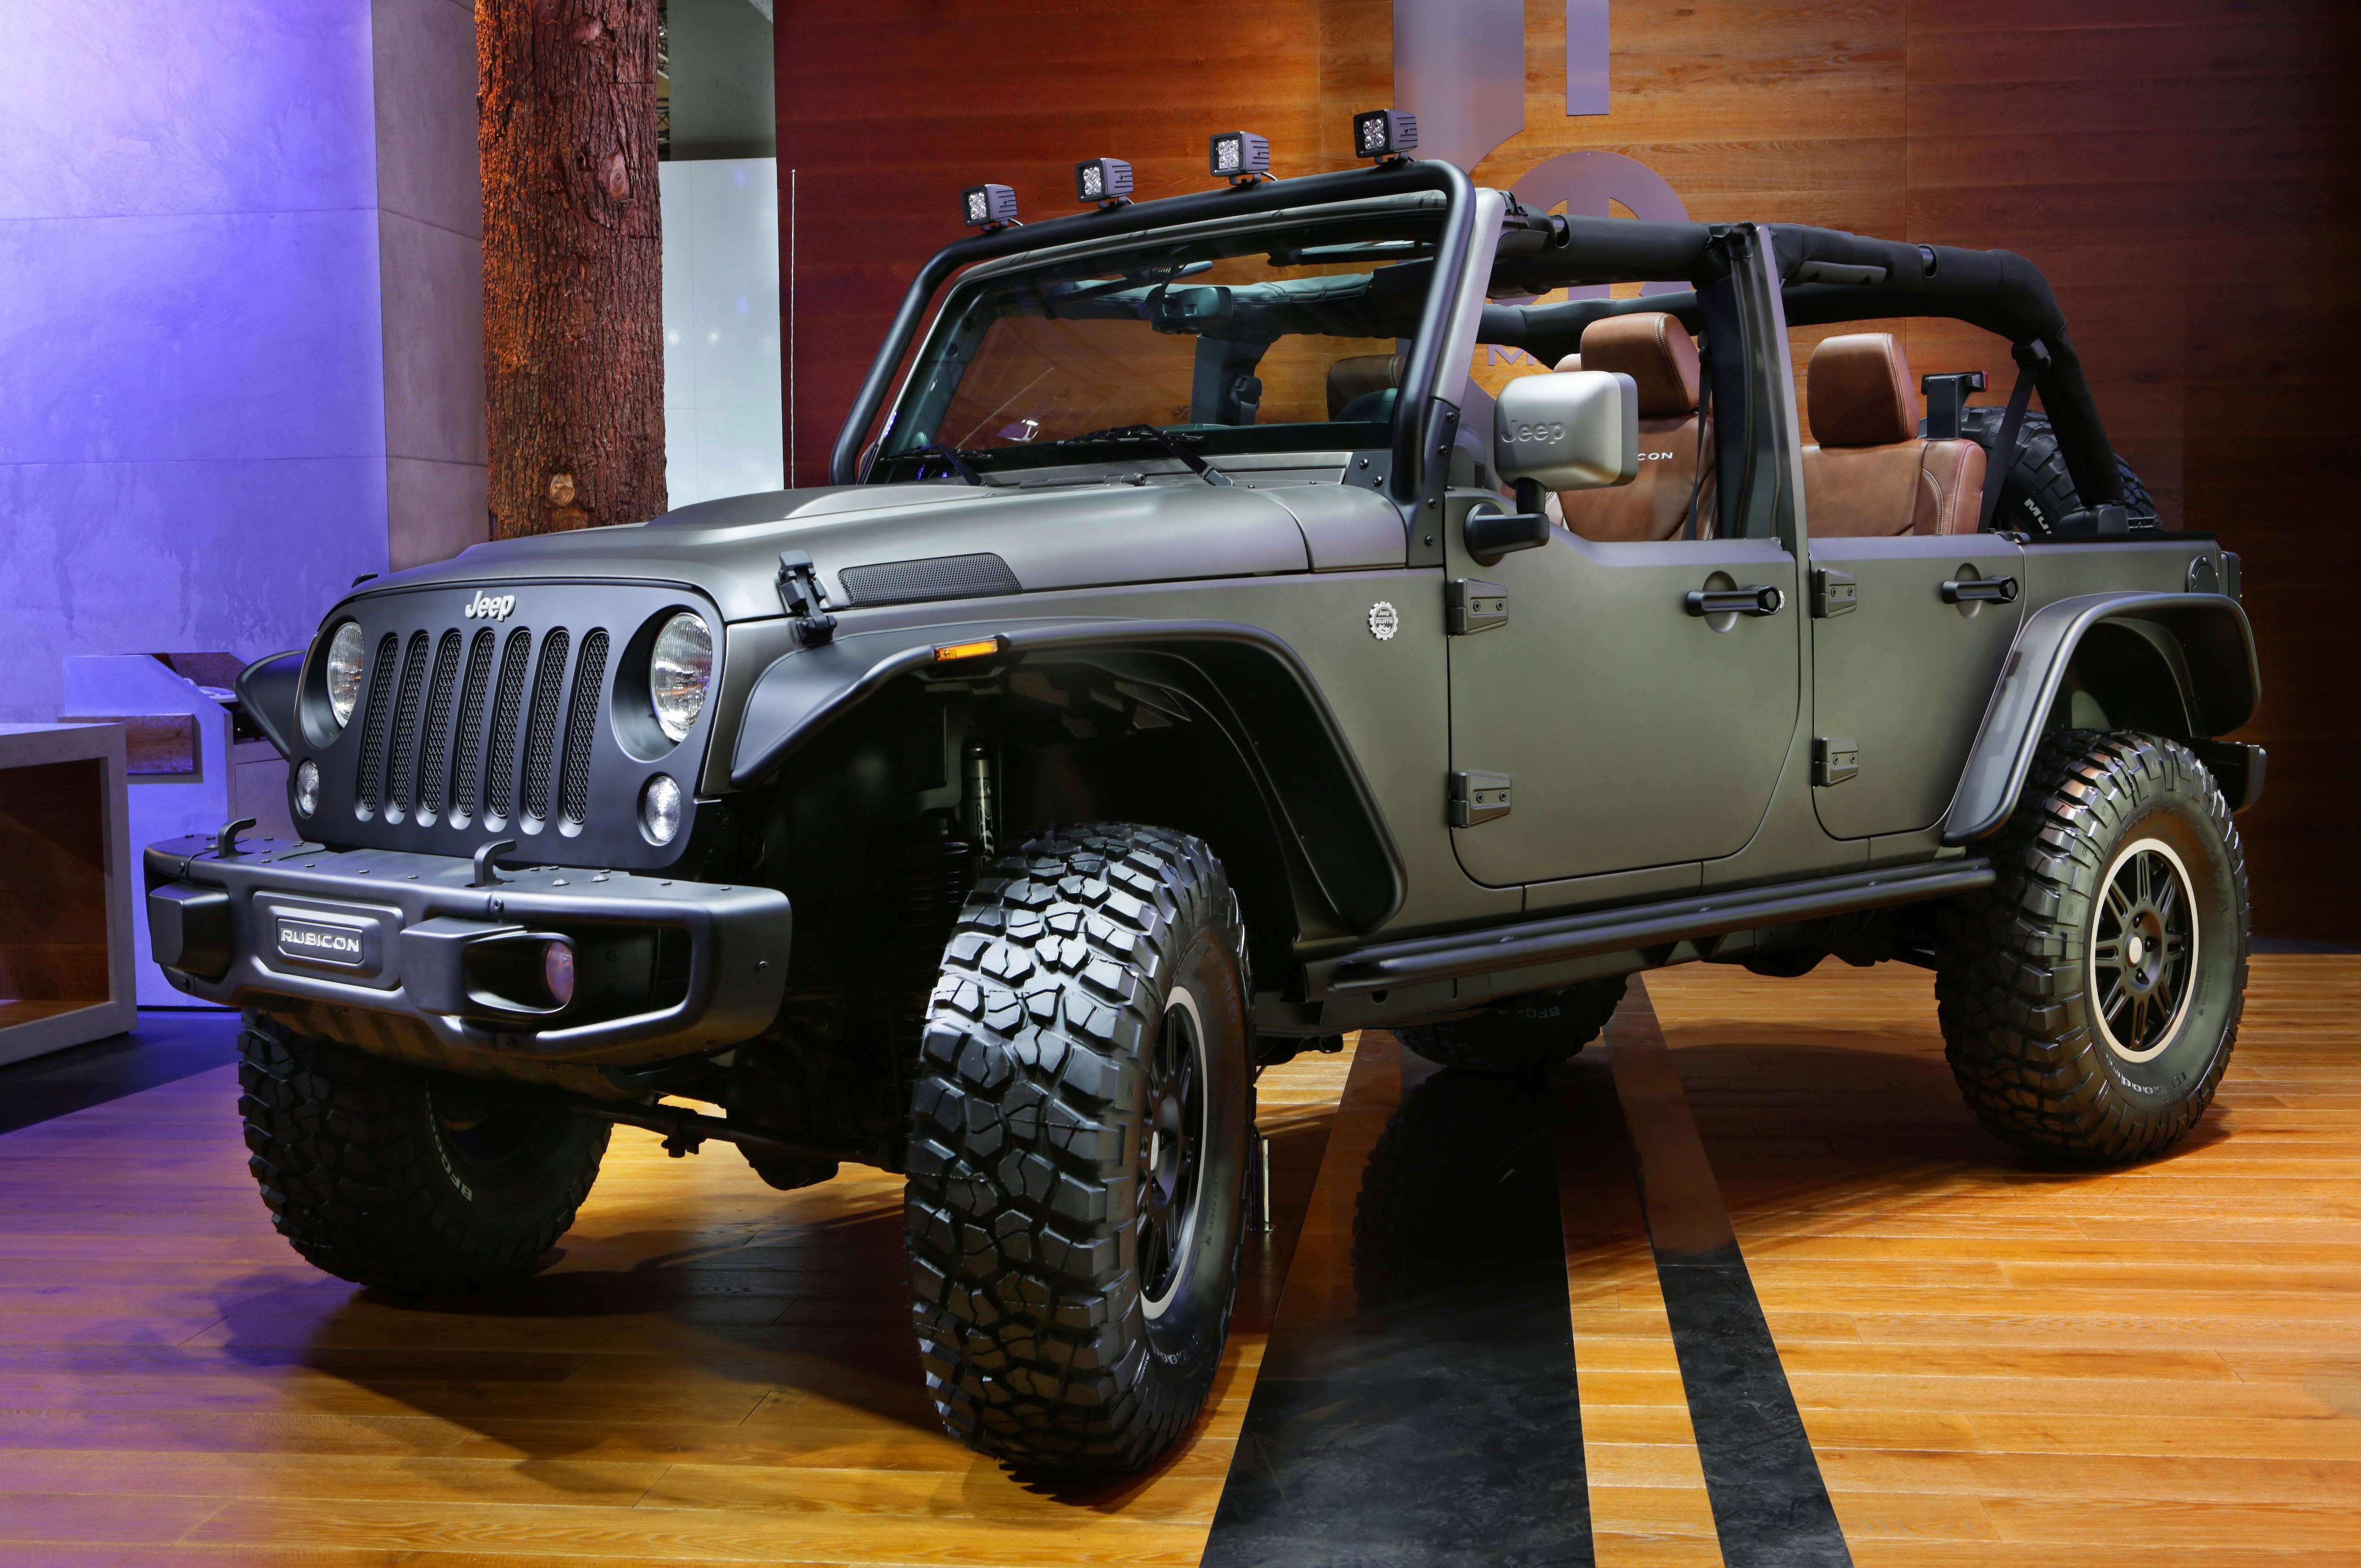 26 Concept of New Jeep 2019 Vehicles Spy Shoot Redesign and Concept with New Jeep 2019 Vehicles Spy Shoot